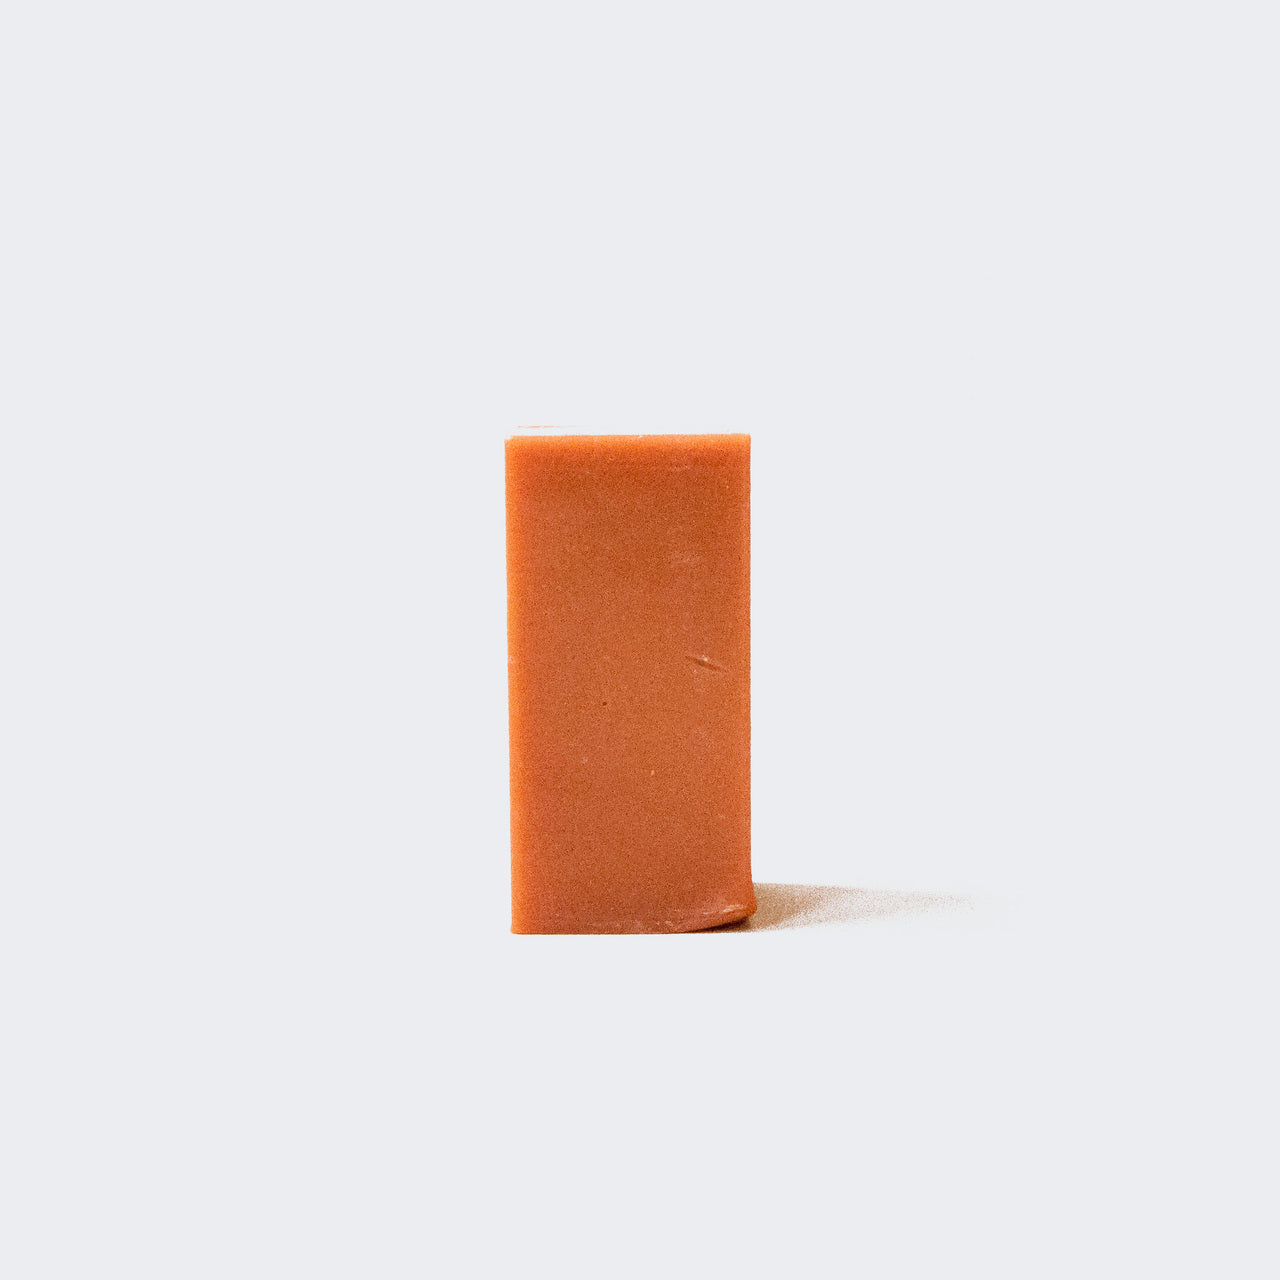 Binu Binu - Sujeonggwa Soap, available at LCD